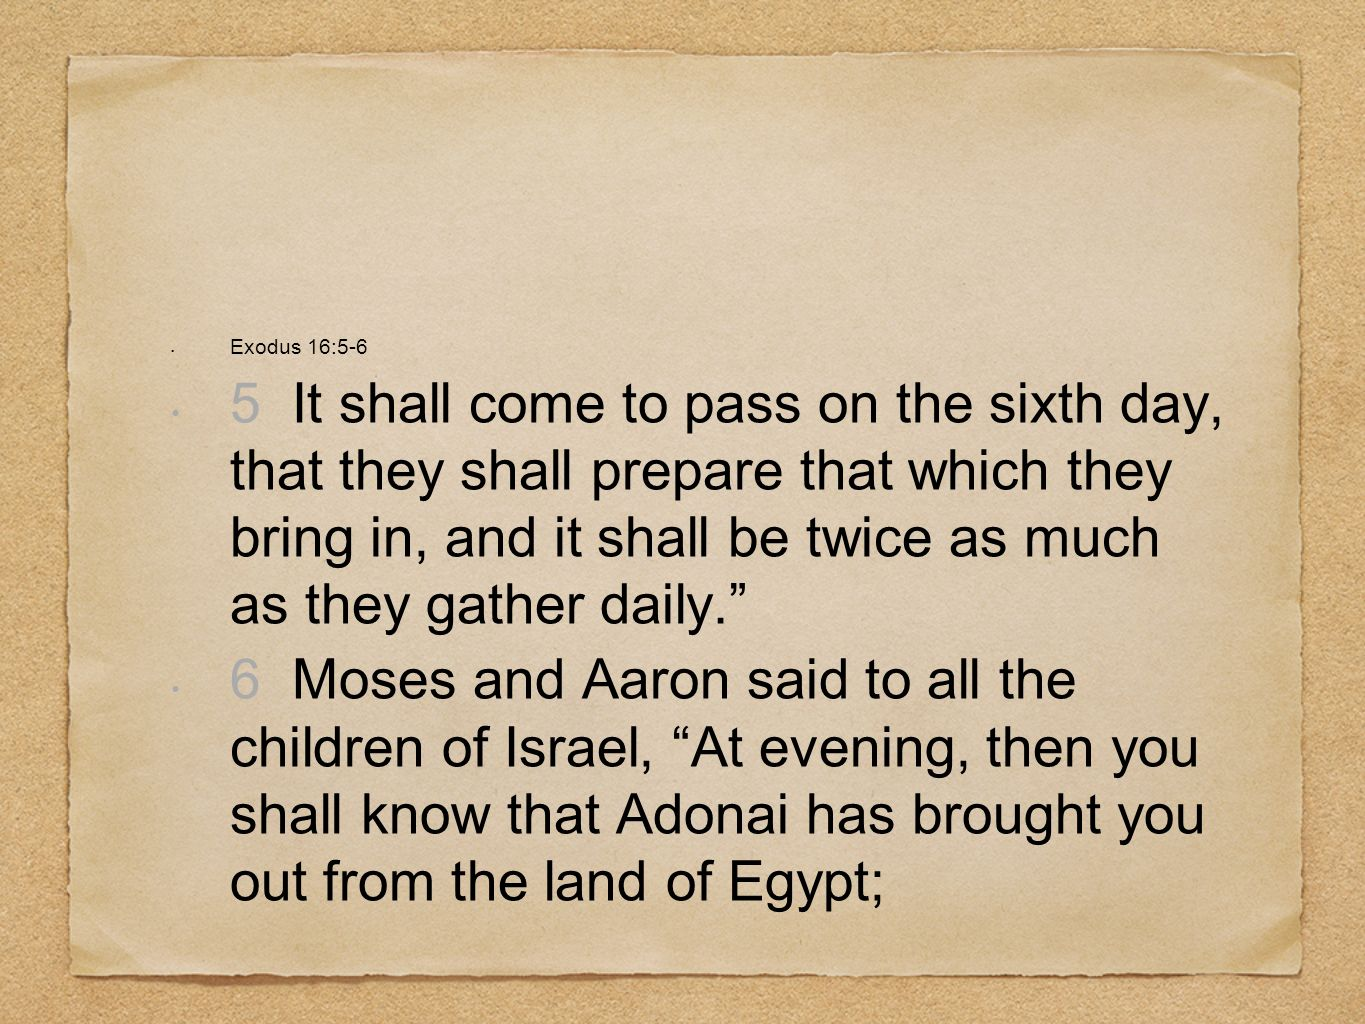 Exodus 16:5-6 5 It shall come to pass on the sixth day, that they shall prepare that which they bring in, and it shall be twice as much as they gather